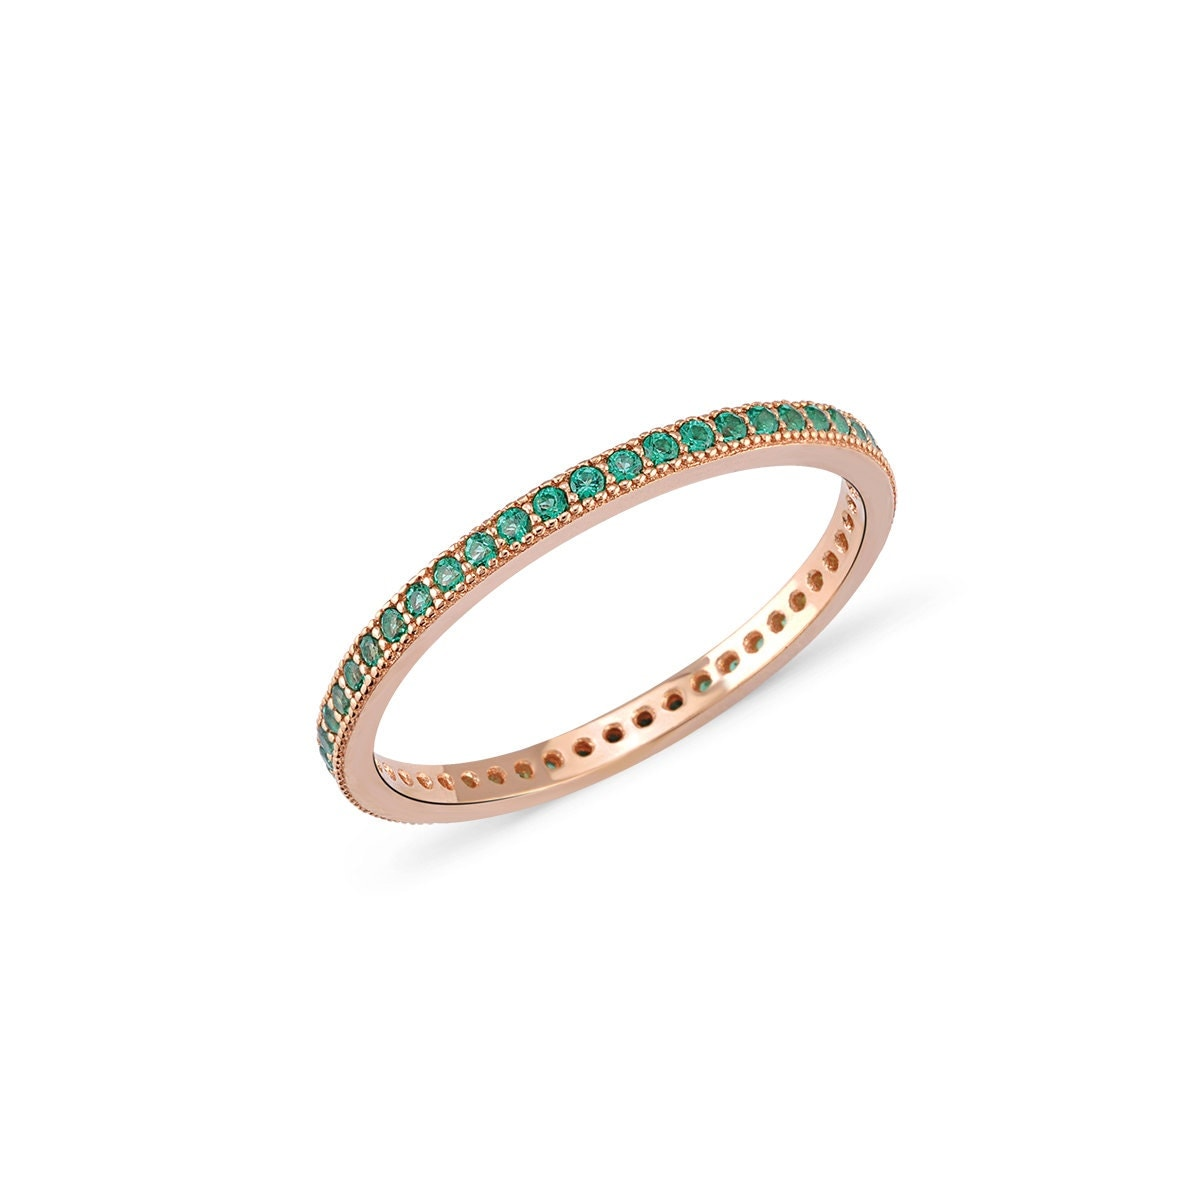 Emerald Eternity Band Ring. Zirconia Diamond. Pink Rings. Platinum Bangles. Solid Gold Ankle Bracelets. Jewelry Stores. Lime Green Bracelet. Square Cut Rings. Glamorous Wedding Rings